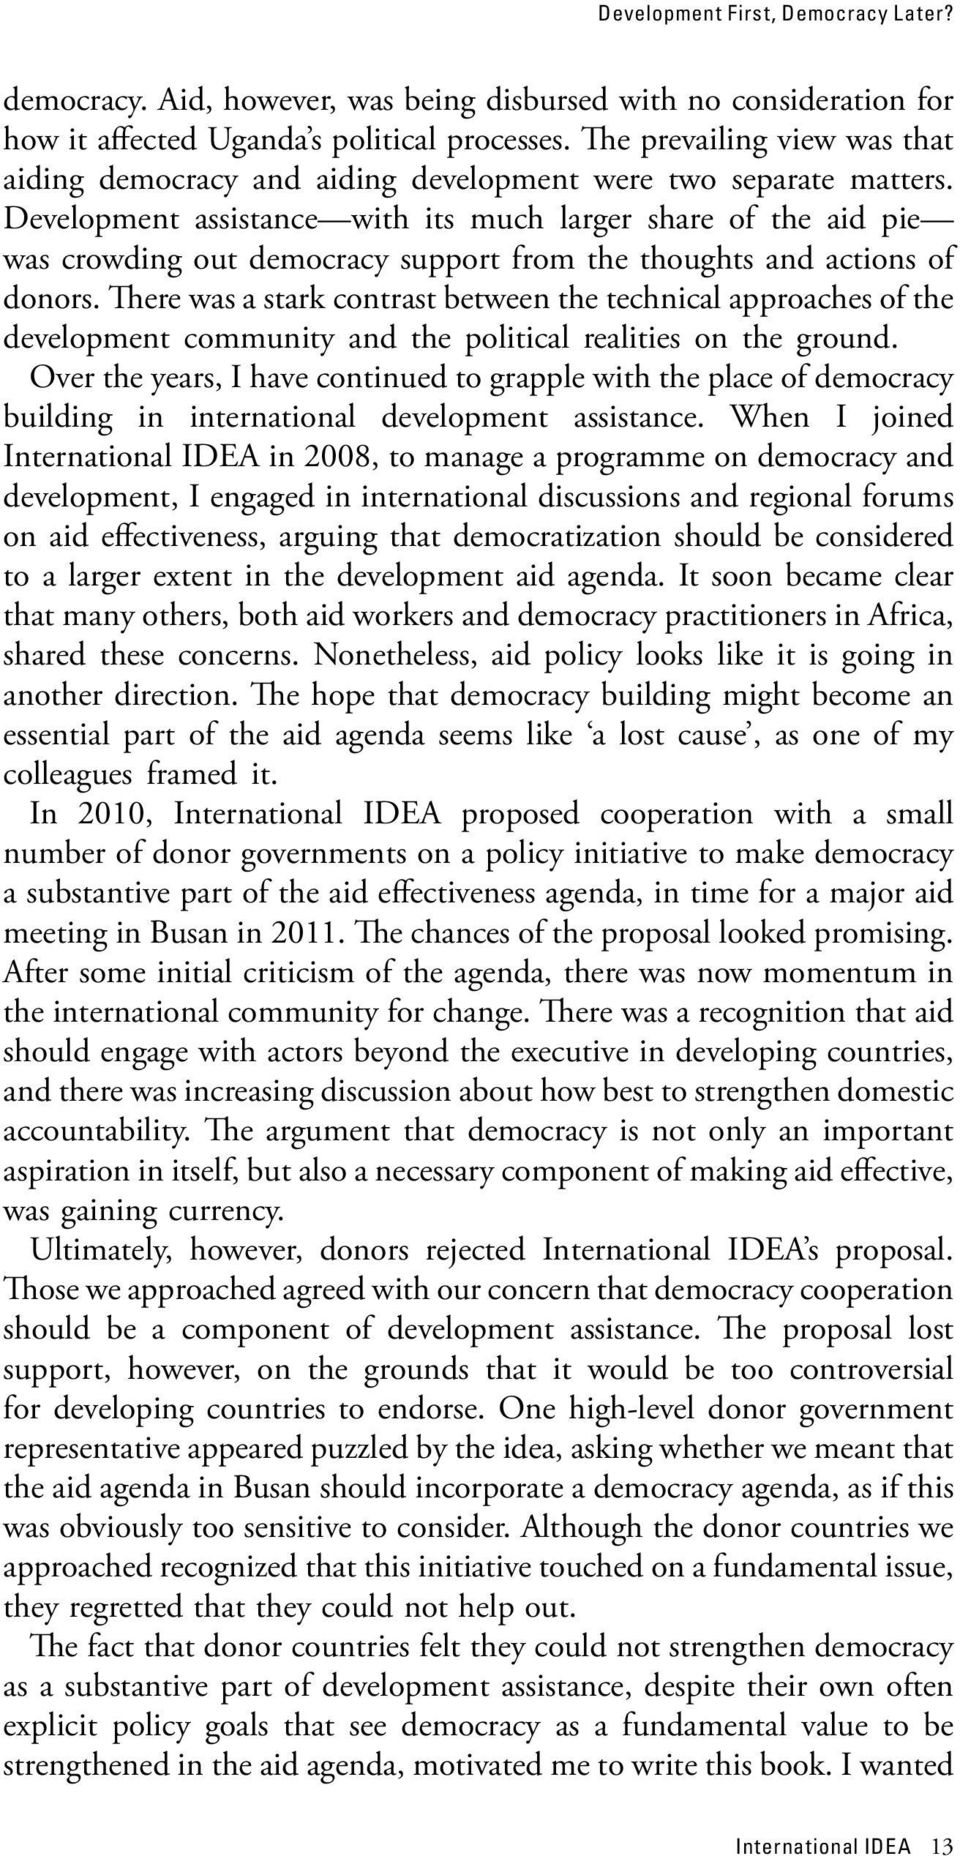 Development assistance with its much larger share of the aid pie was crowding out democracy support from the thoughts and actions of donors.